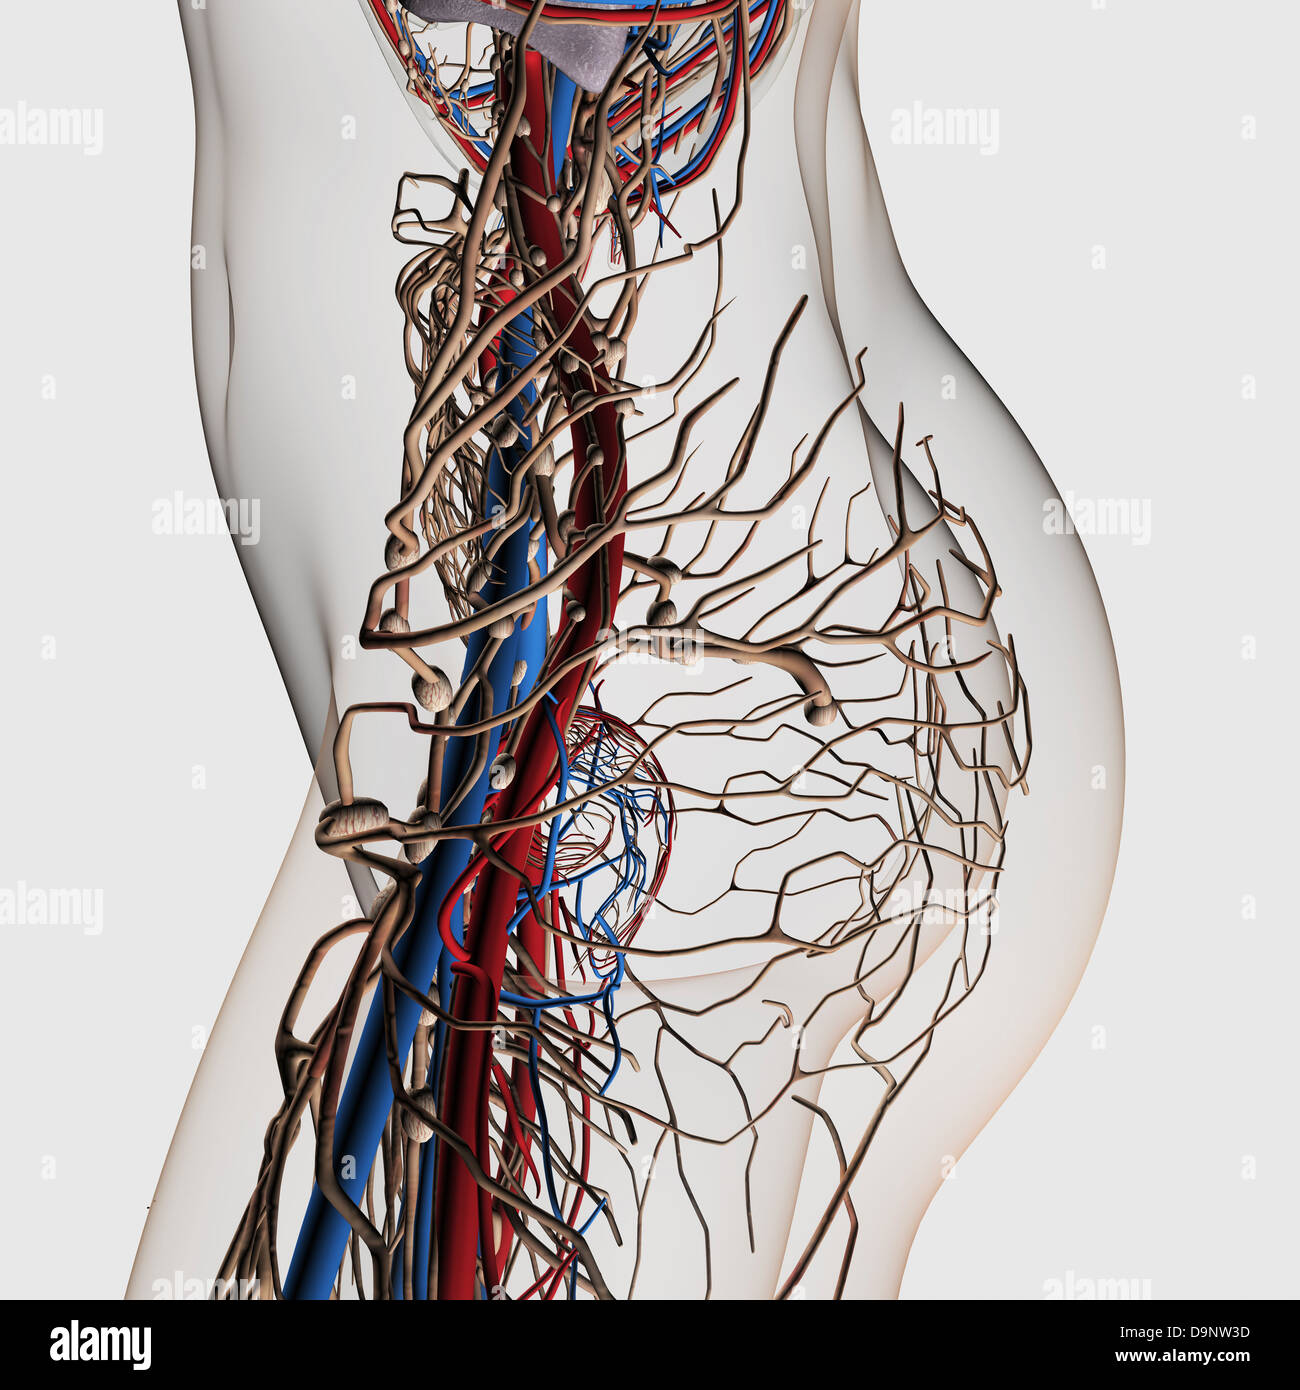 Medical illustration of arteries veins and lymphatic system in medical illustration of arteries veins and lymphatic system in female midsection side view ccuart Images